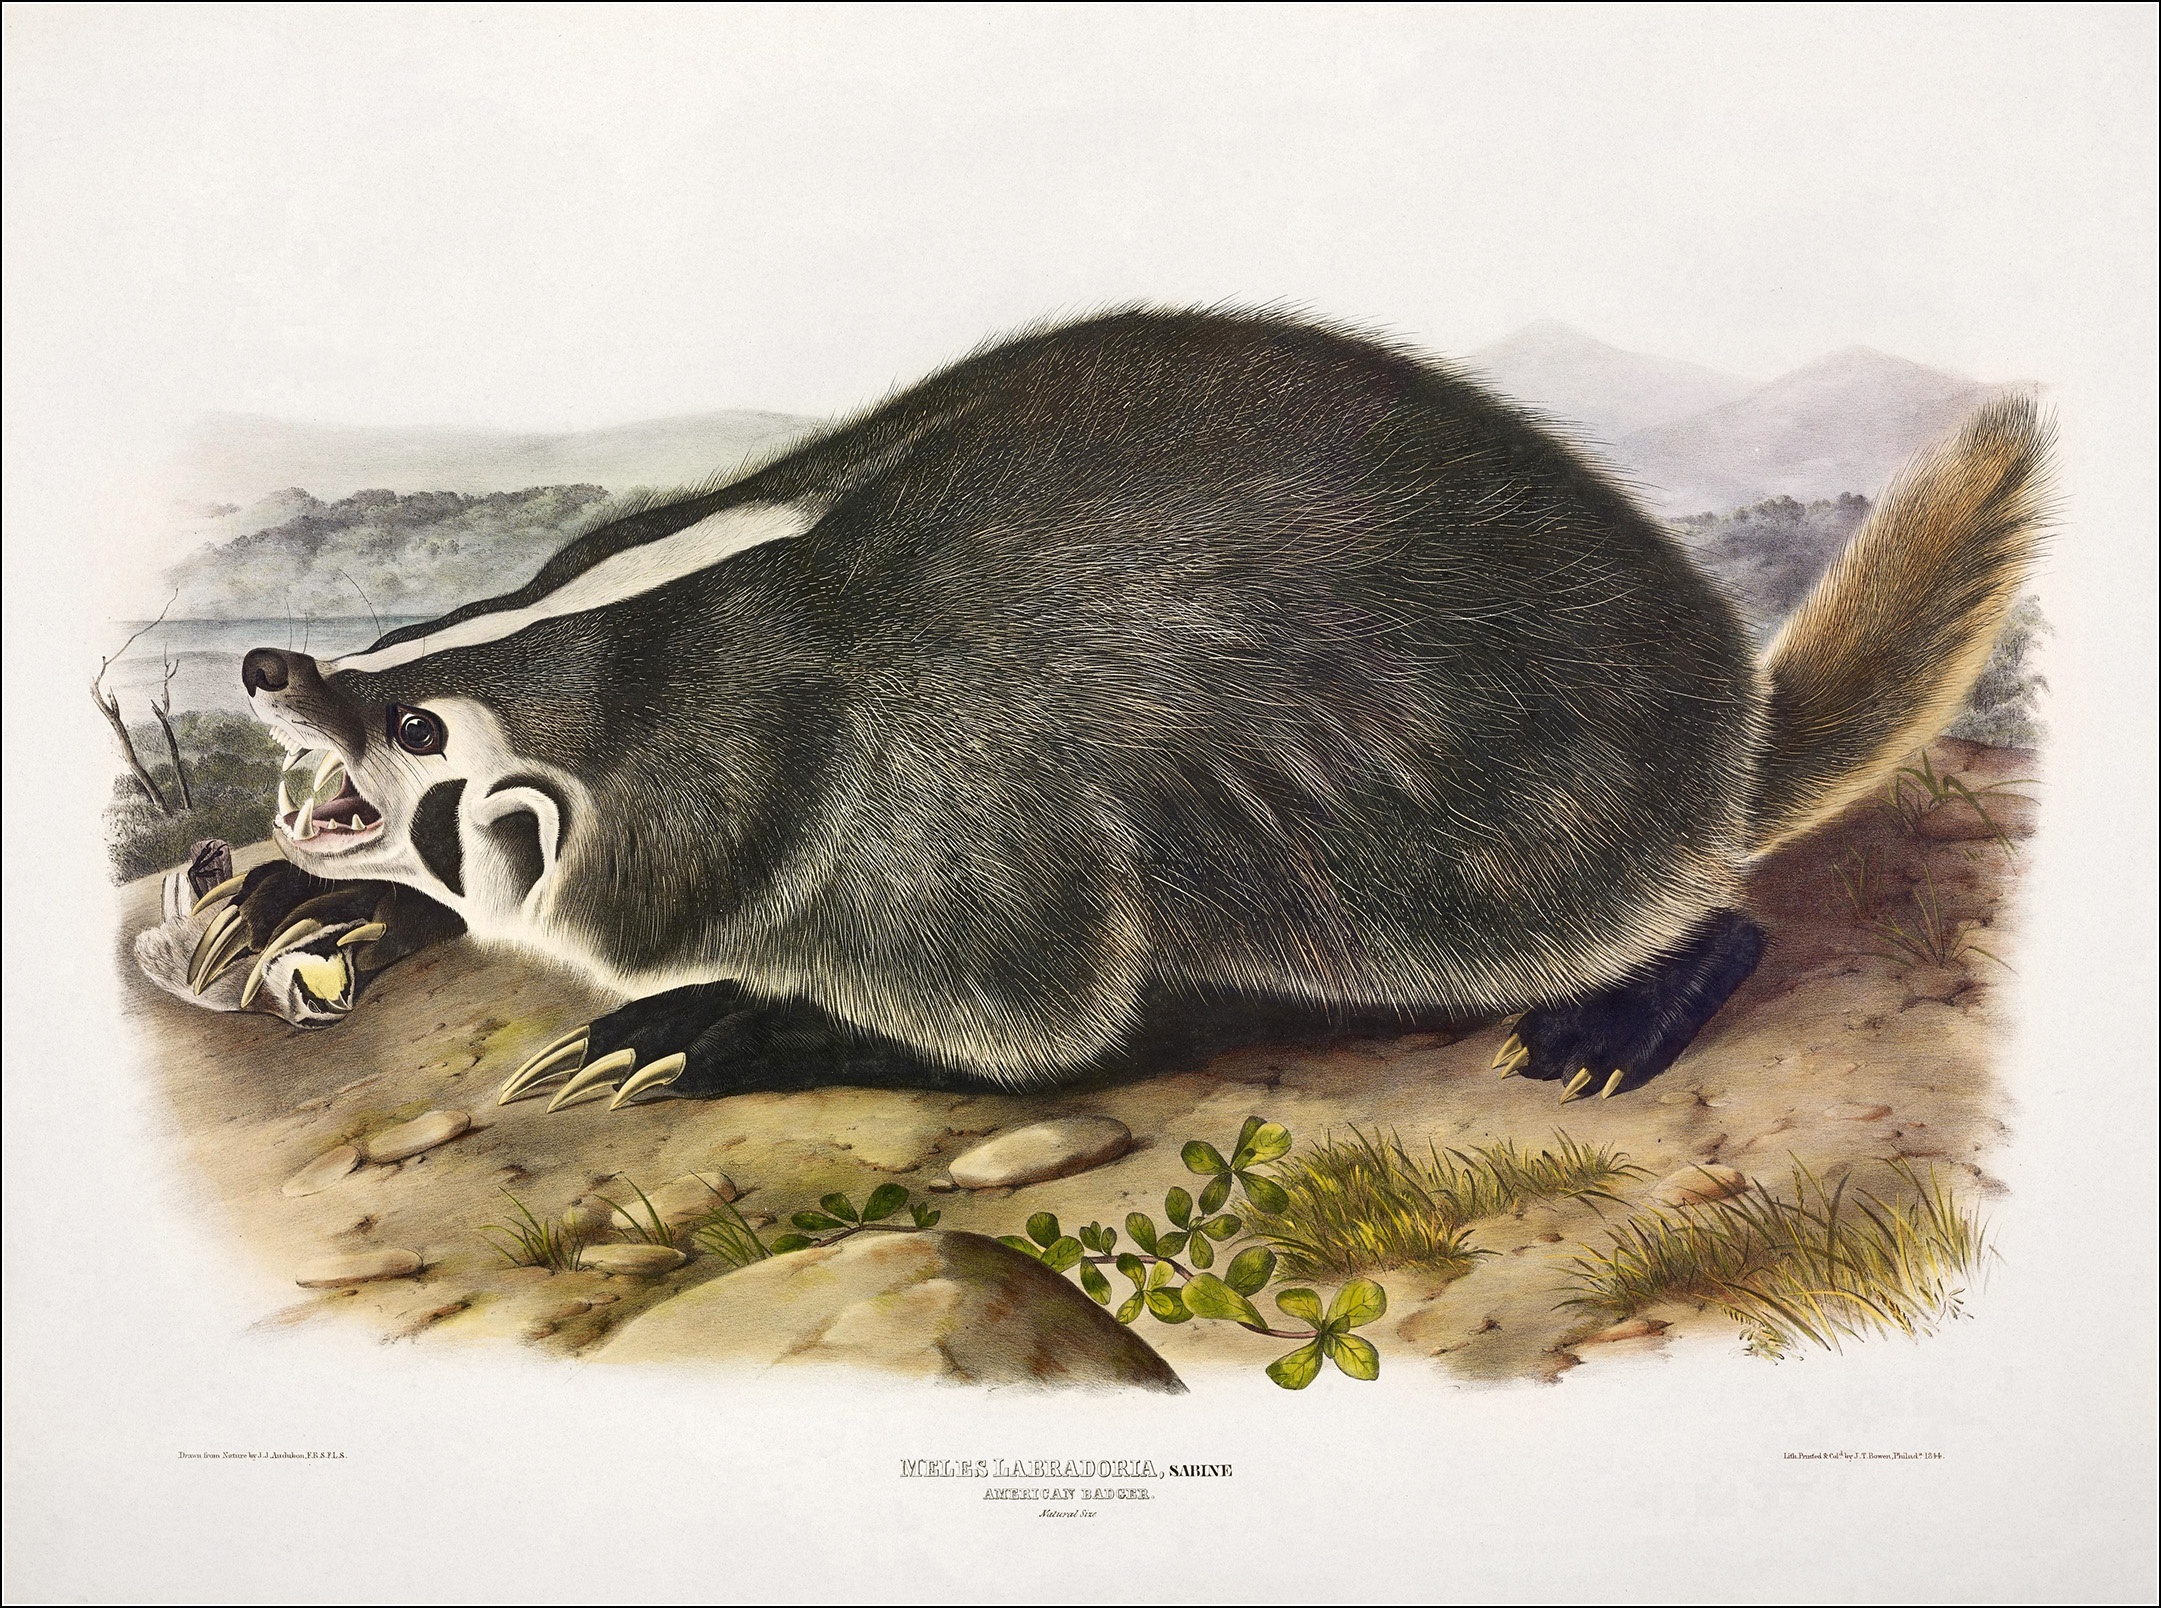 John James Audubon, The Viviparous Quadrupeds of North America